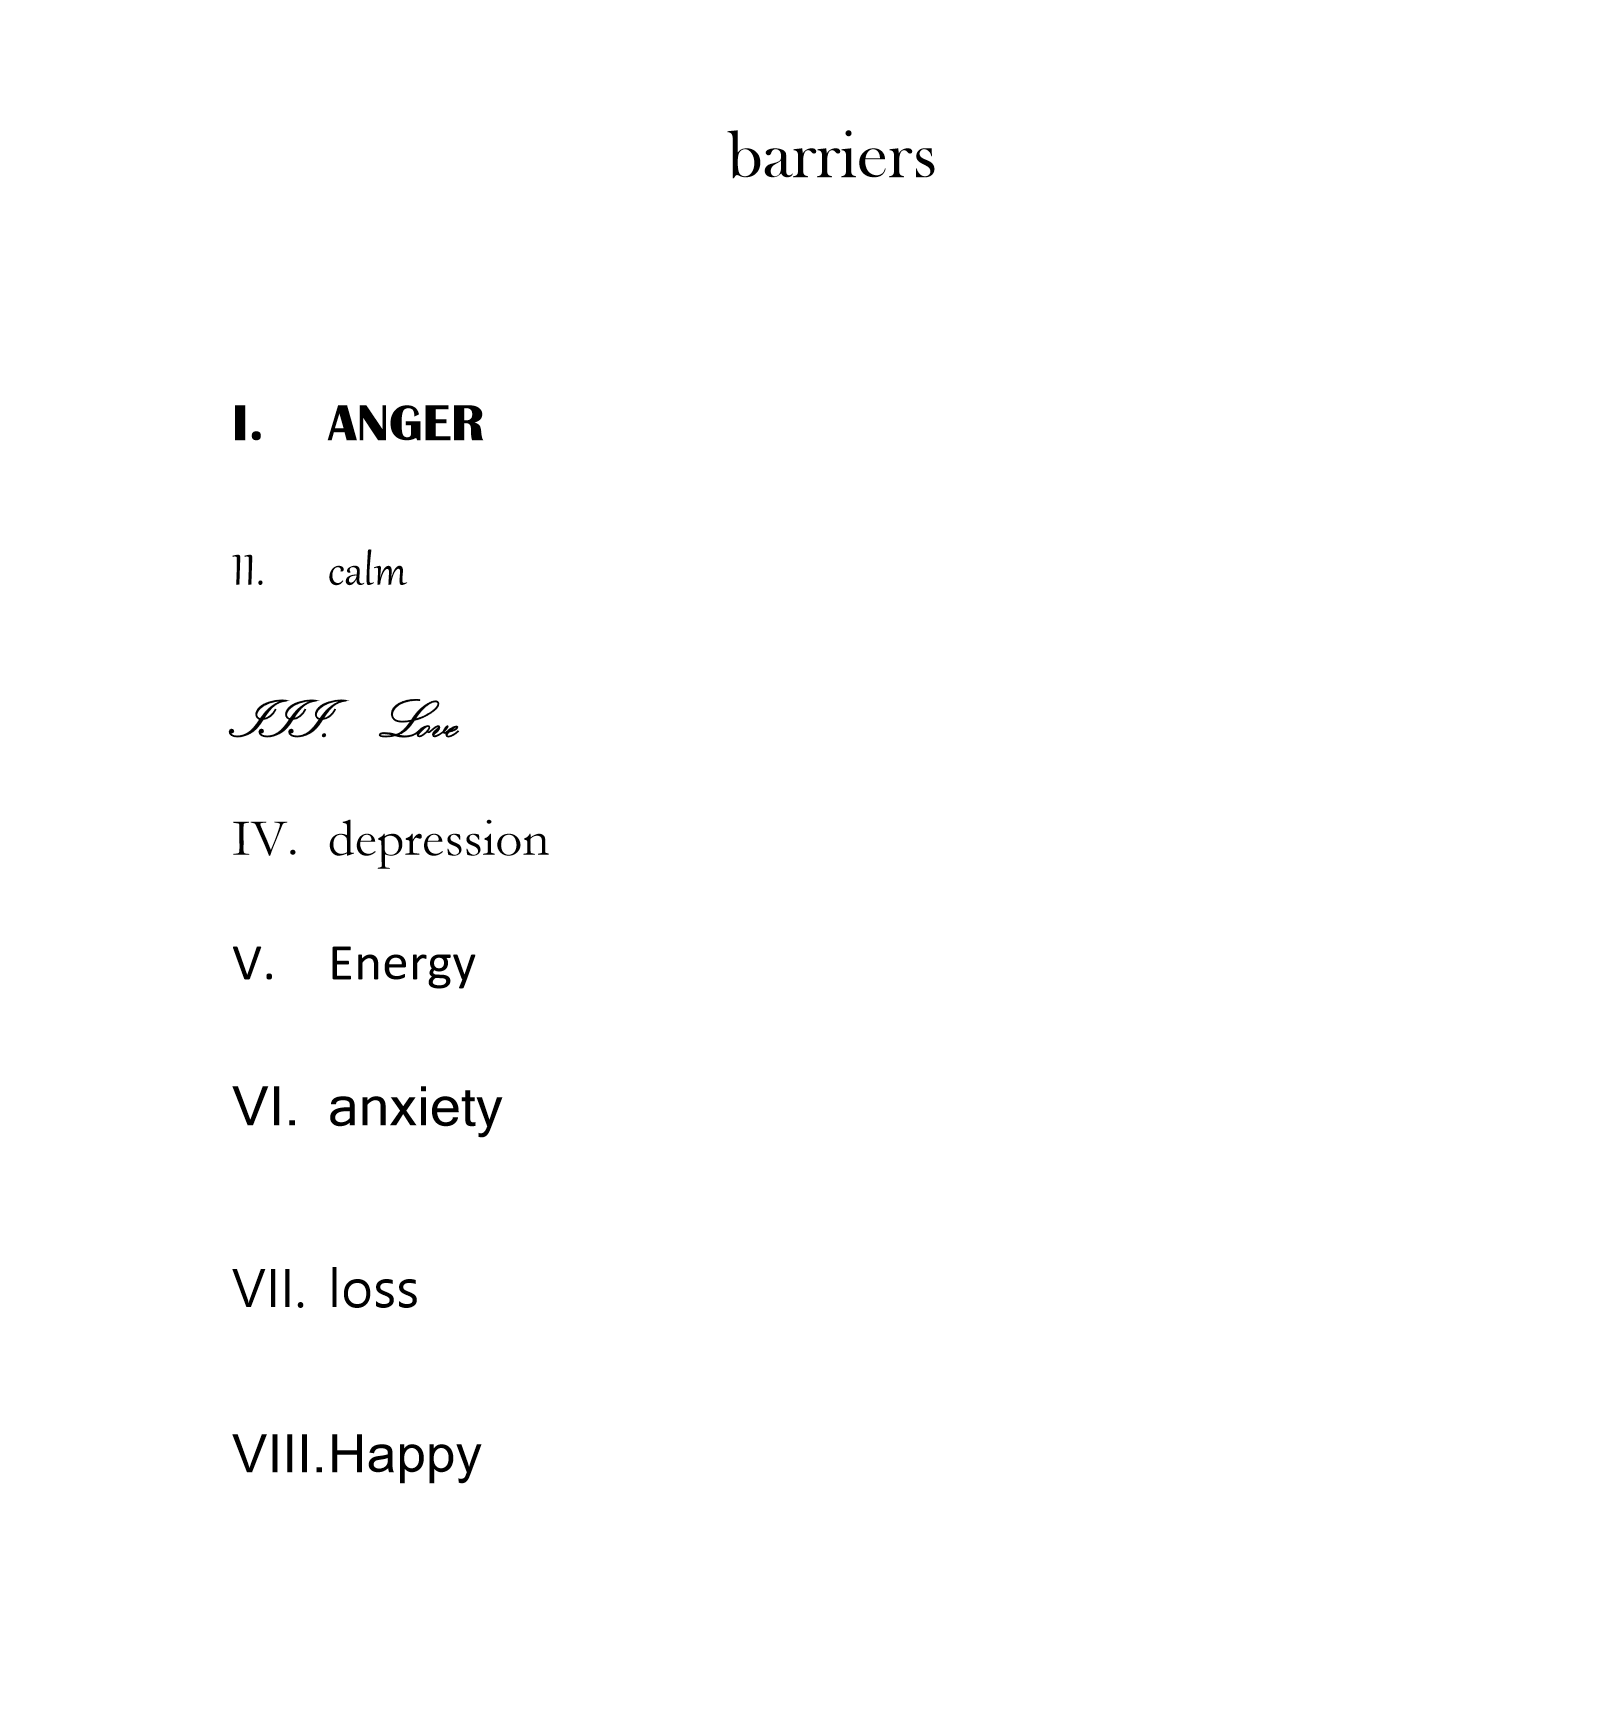 Barriers - Barriers is meant to be a discussion on language barriers. 10 musicians or non-musicians play instruments they have never learned to convey universal emotions and mindsets for 1 minute periods.